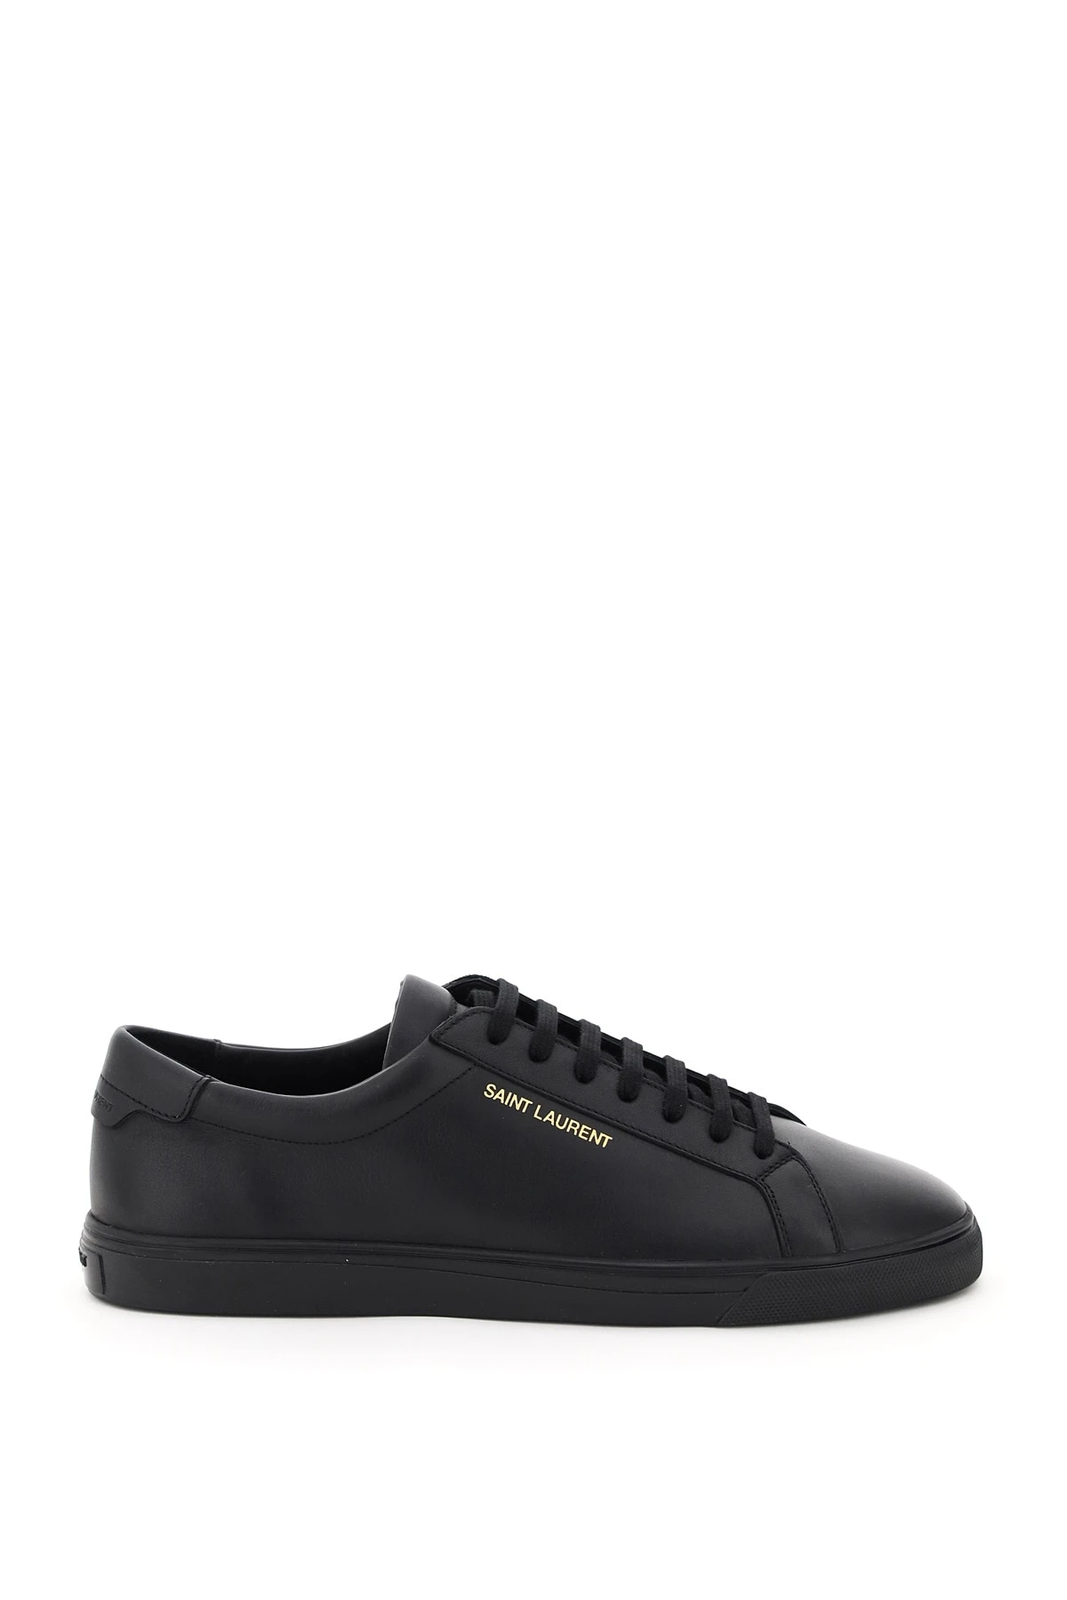 NEW Saint laurent antdy leather sneakers 606833 0ZS00 Black AUTHENTIC NWT